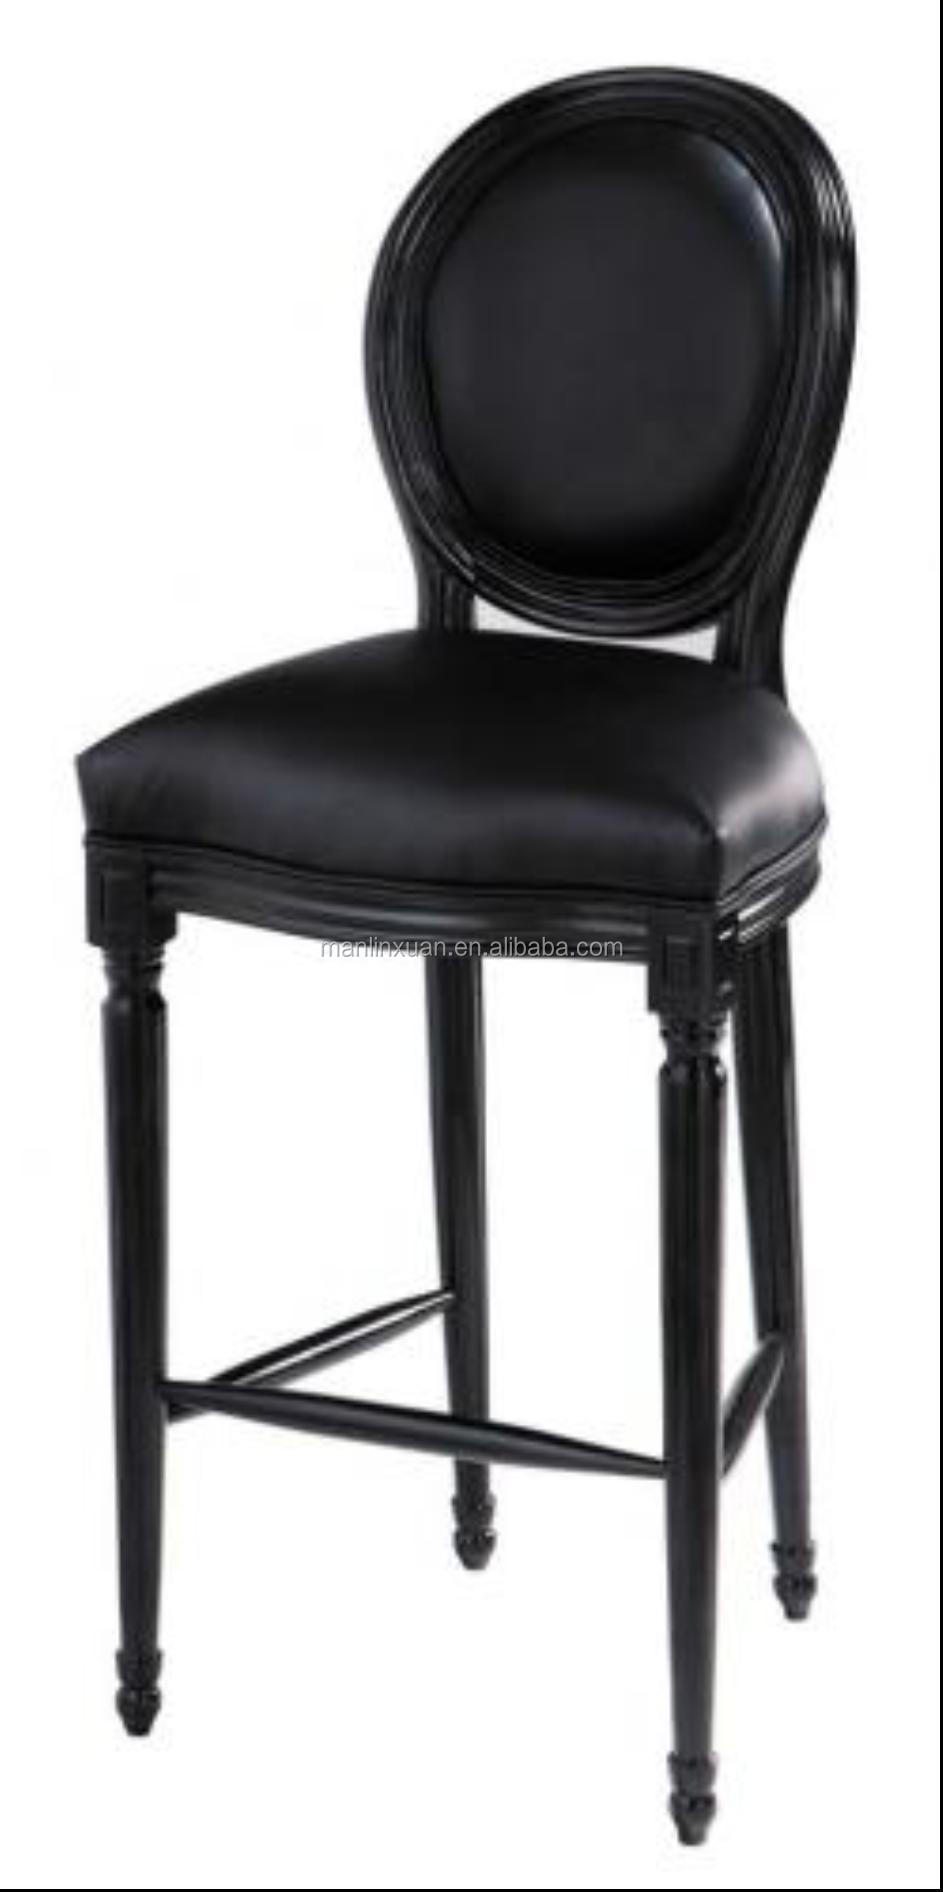 Vintage Style Bar Chair For Sale Xd1018 Buy Vintage